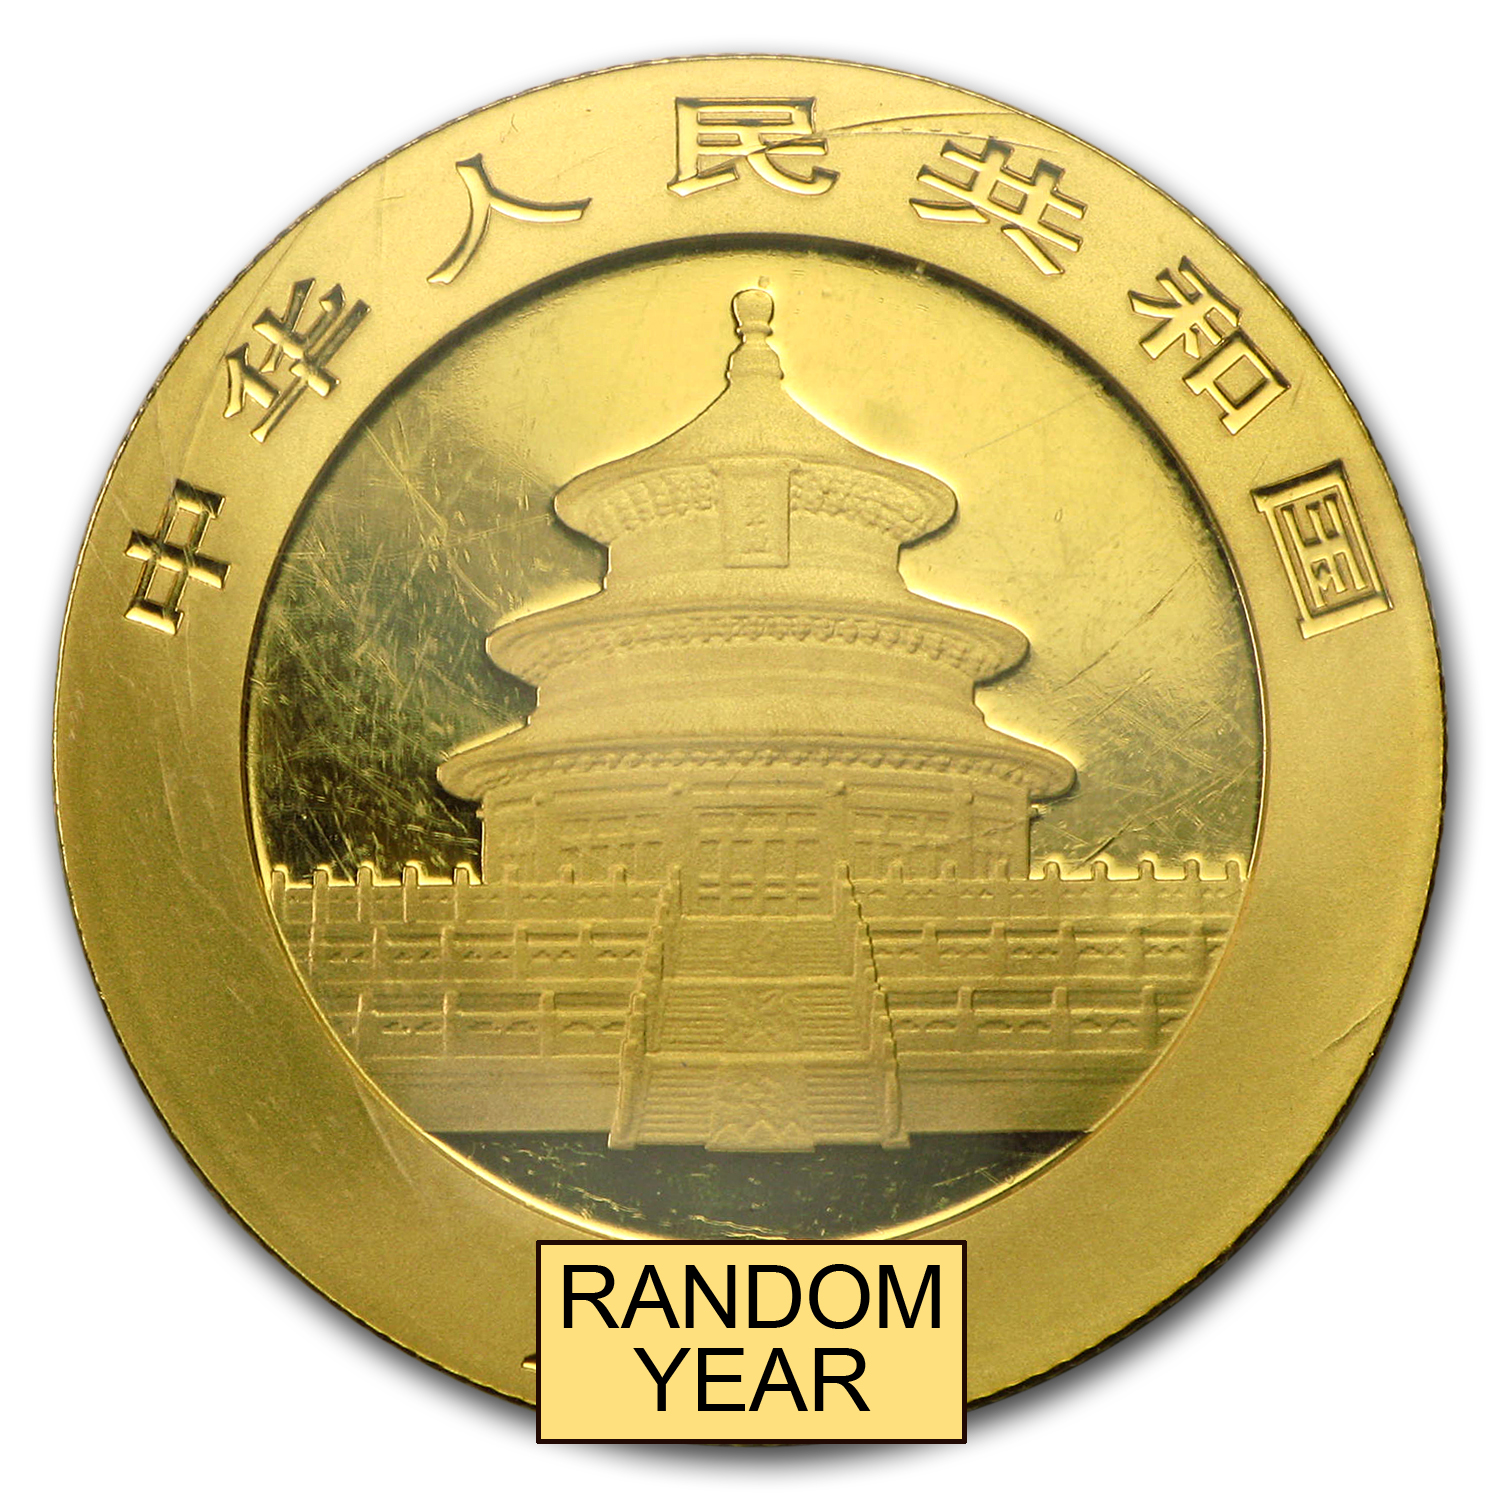 1/2 oz Gold Chinese Panda BU - Random Year (Sealed in Plastic)